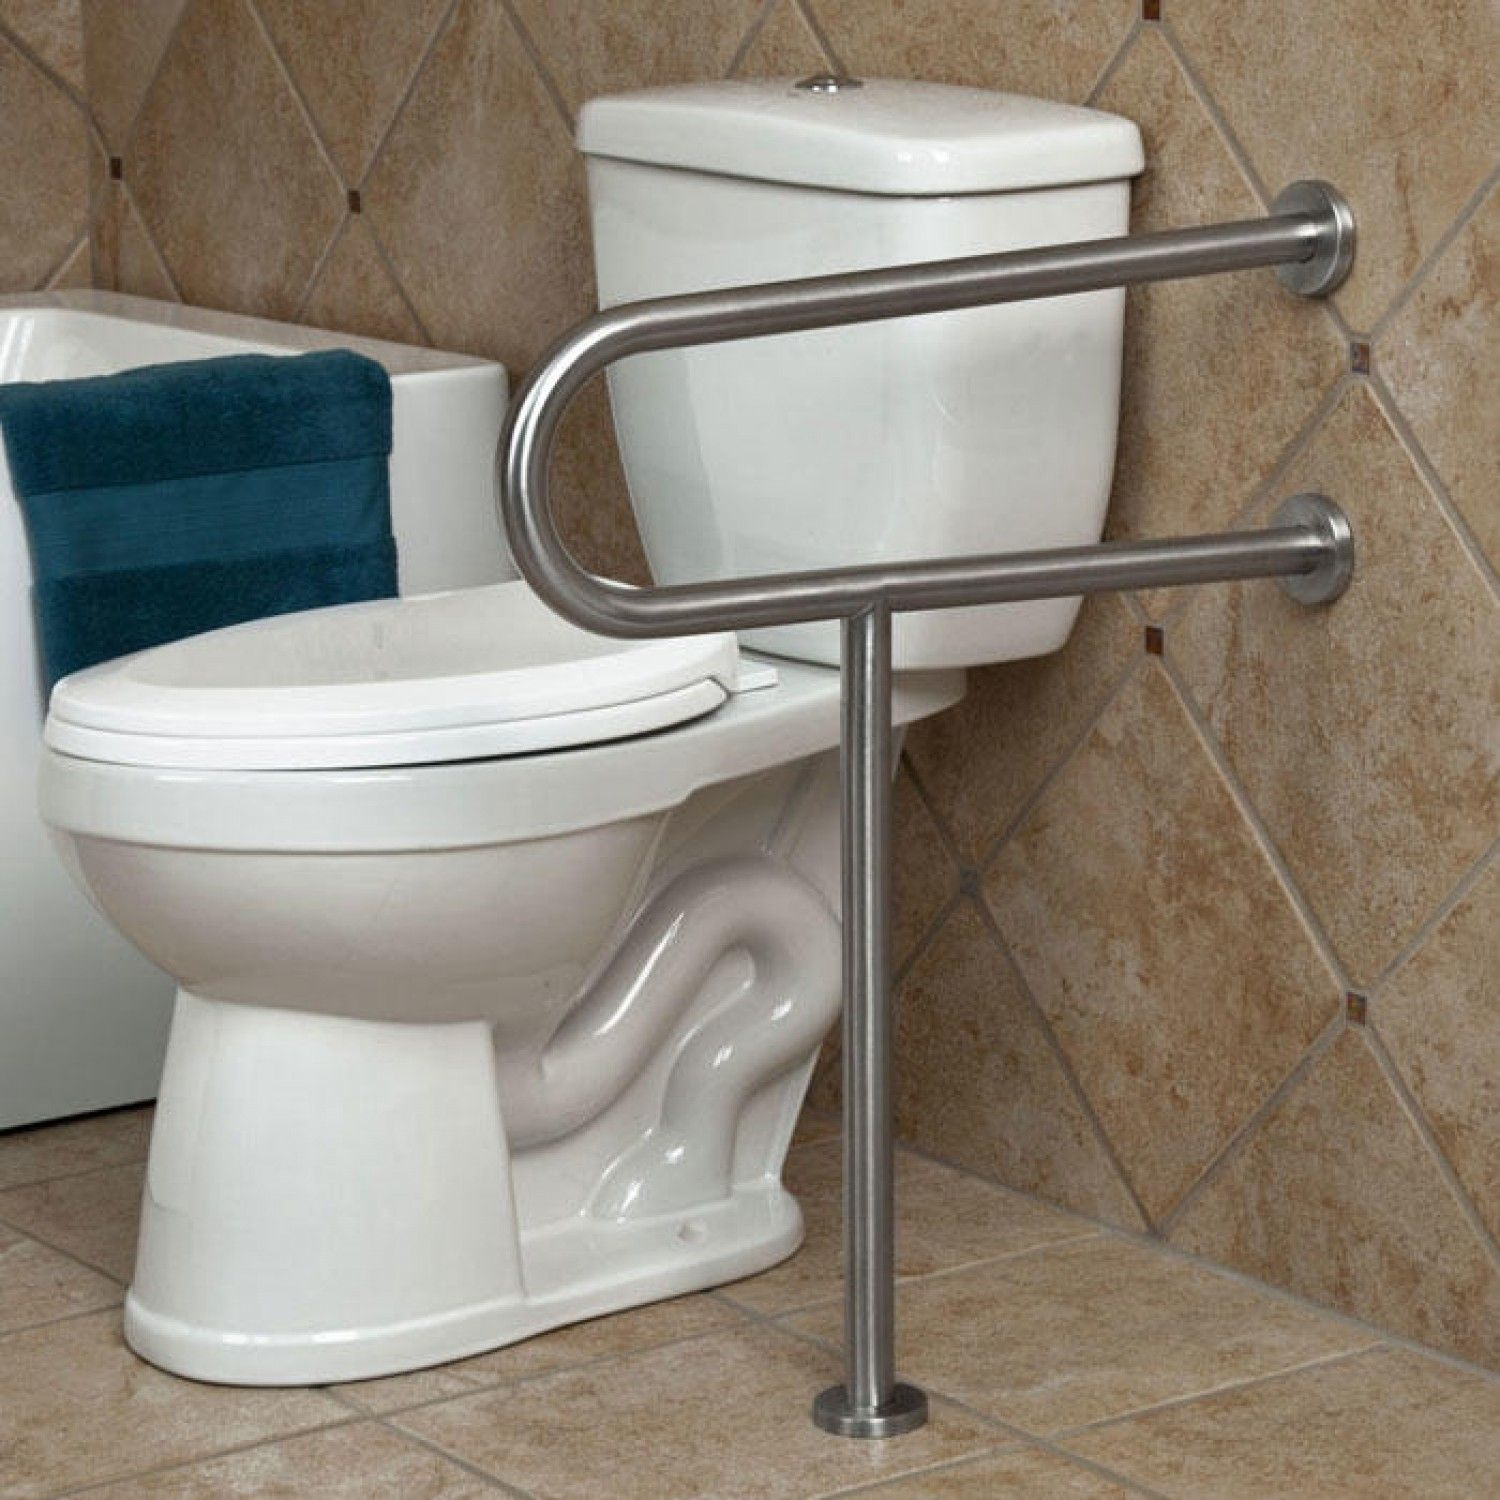 Handicapped bathroom accessories - Handicap Accessories For The Ce Bathroom The Whole Procedure For Beautifying A House Isn T Limited To The Leading Furnishin